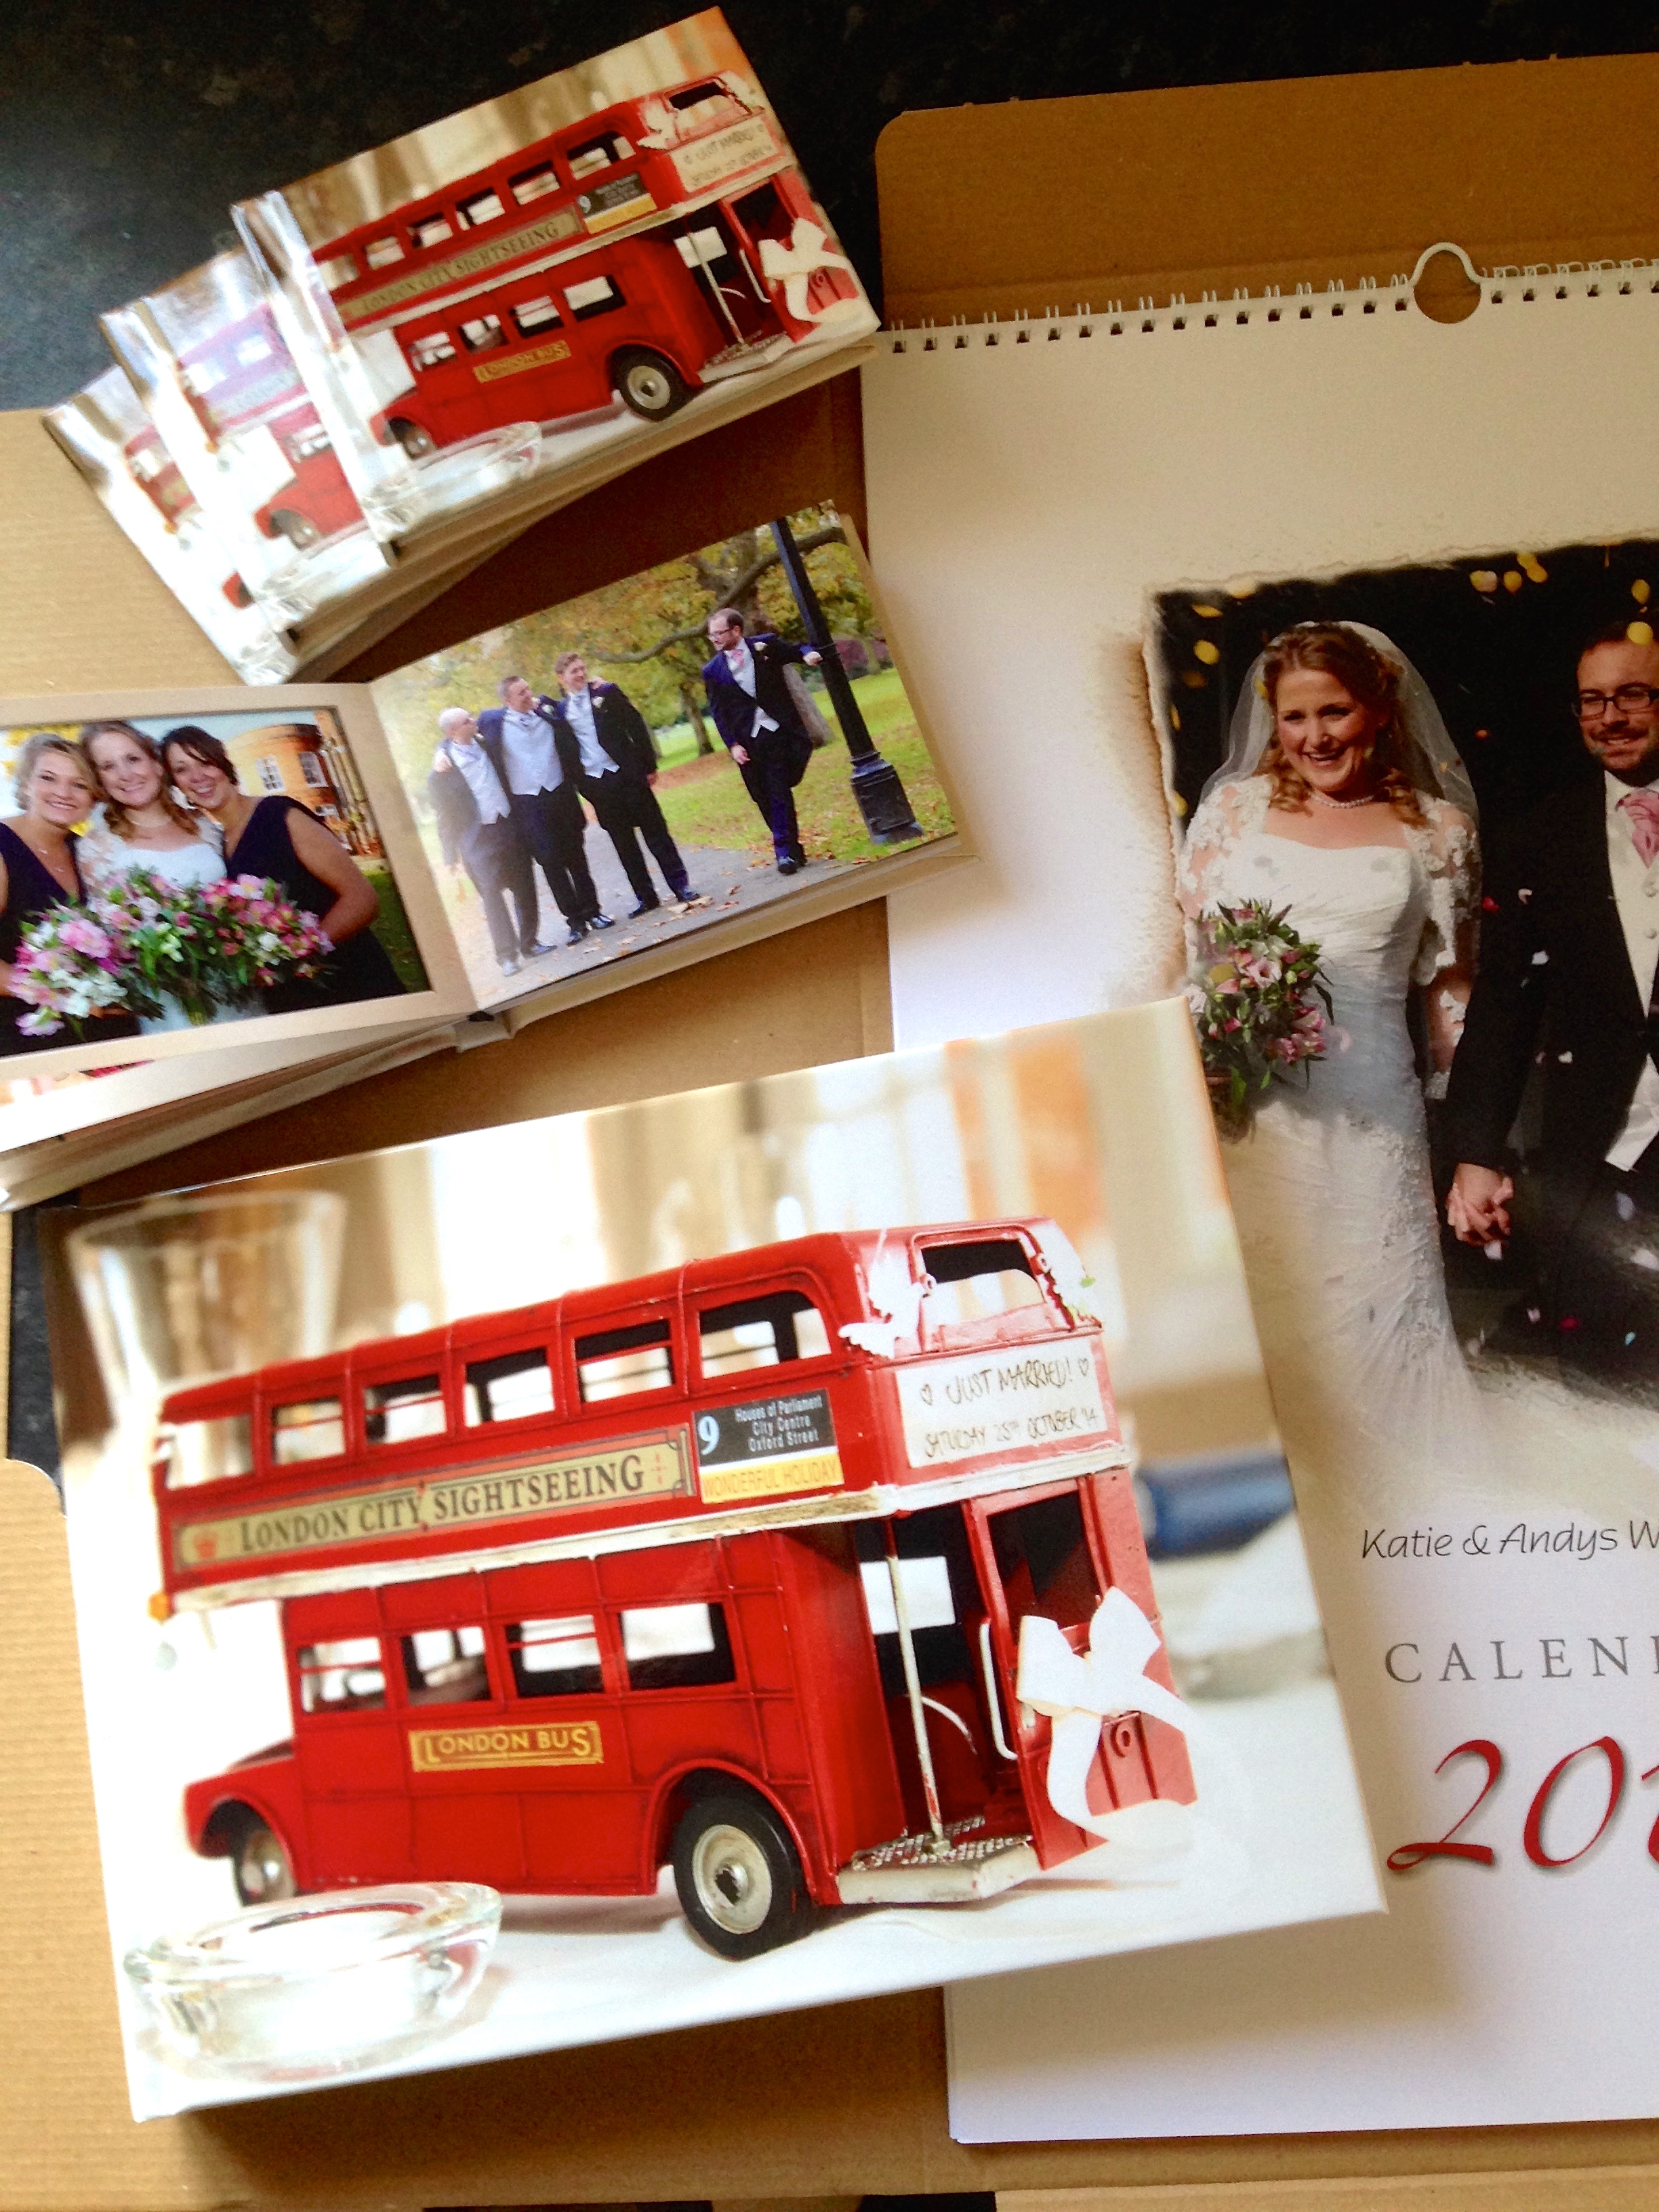 Katies & Andys Album Package - Royal Ascot Hotel